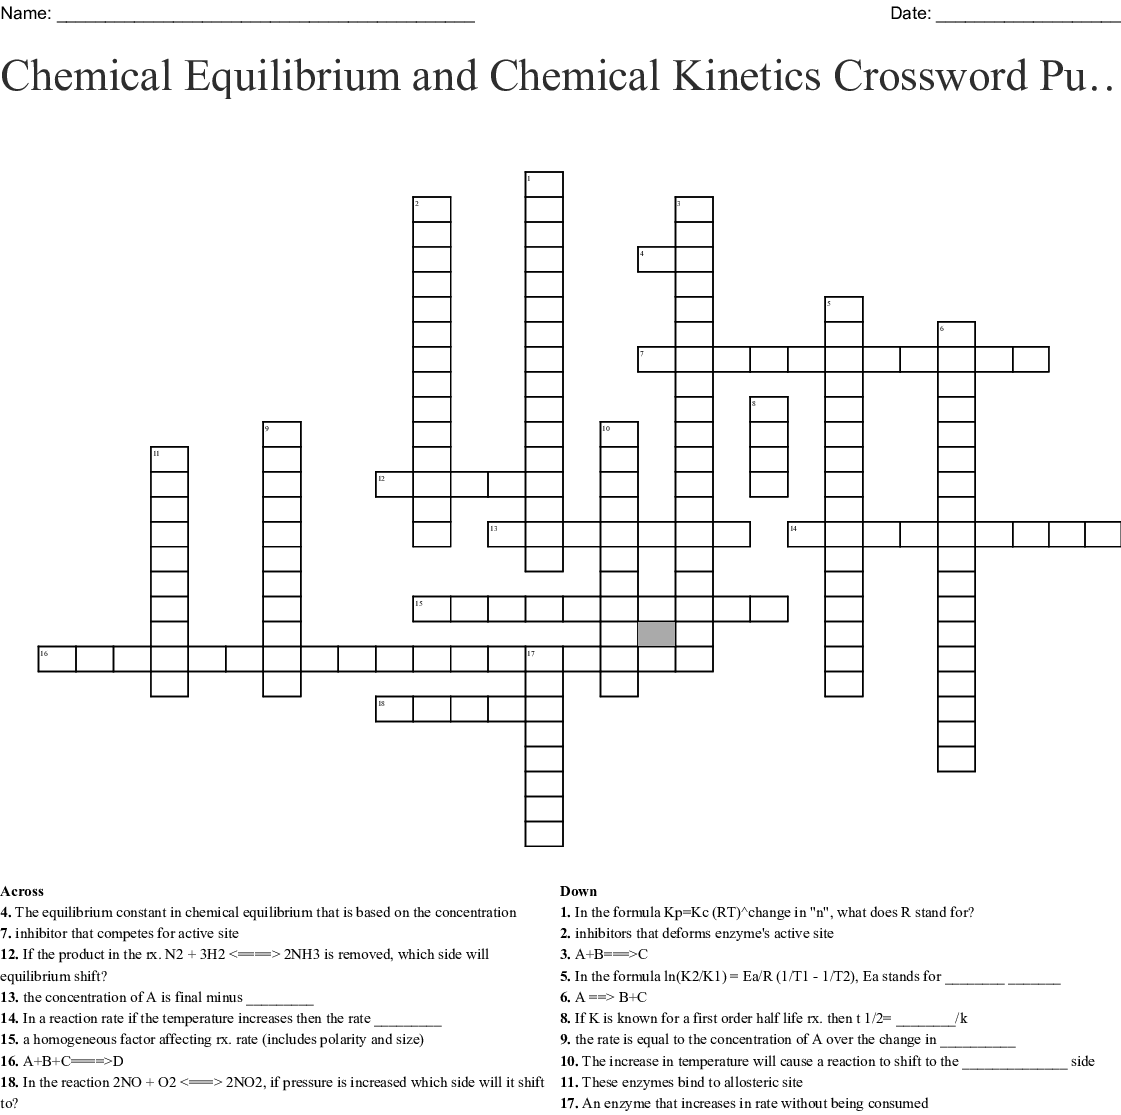 Chemical Equilibrium and Chemical Kinetics Crossword Puzzle